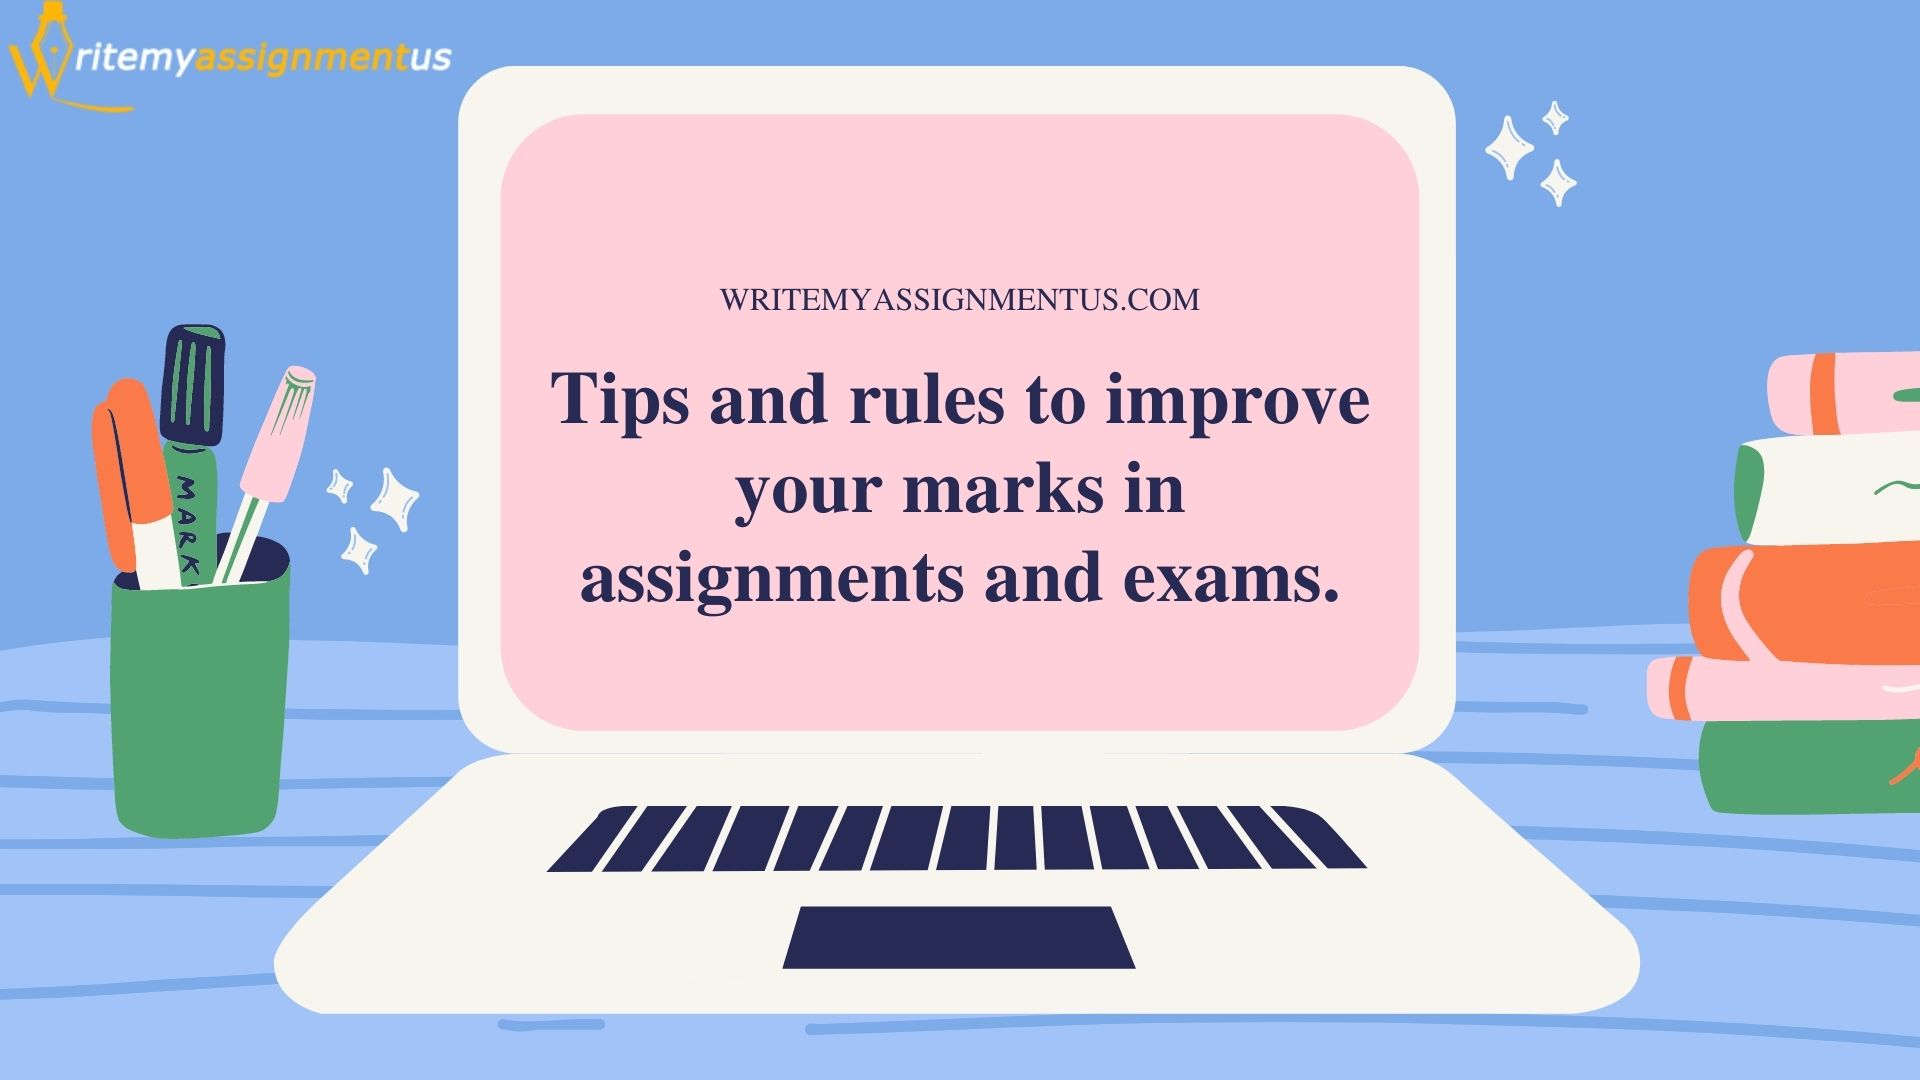 How you can improve marks in assignments?